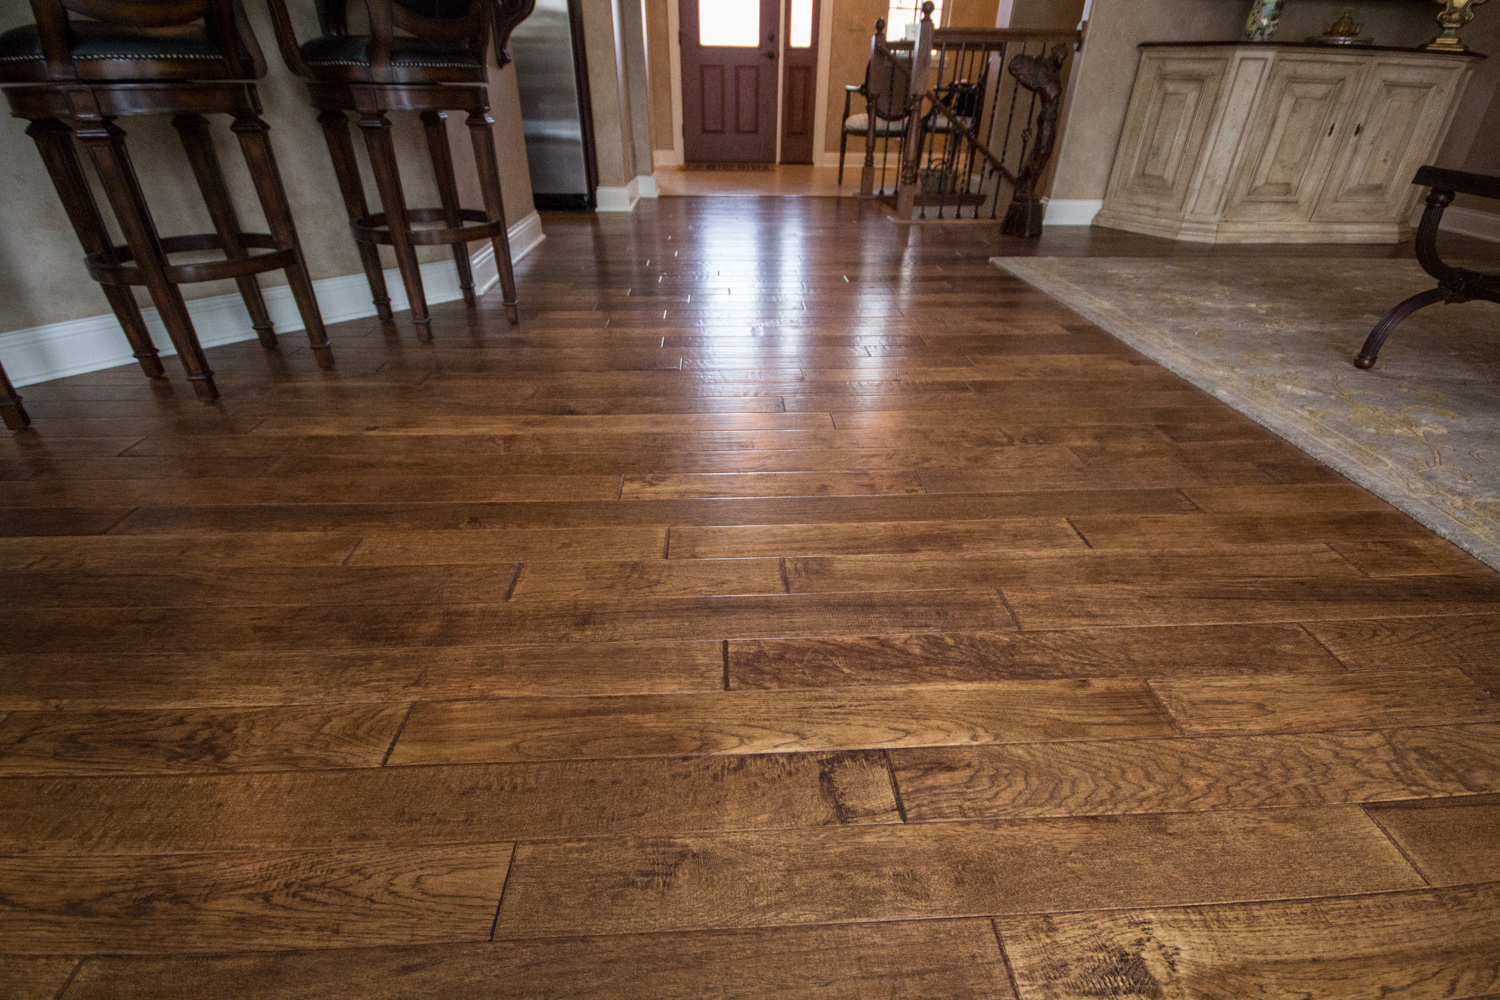 Klm builders inc quick review on flooring options for for Hardwood floors or carpet